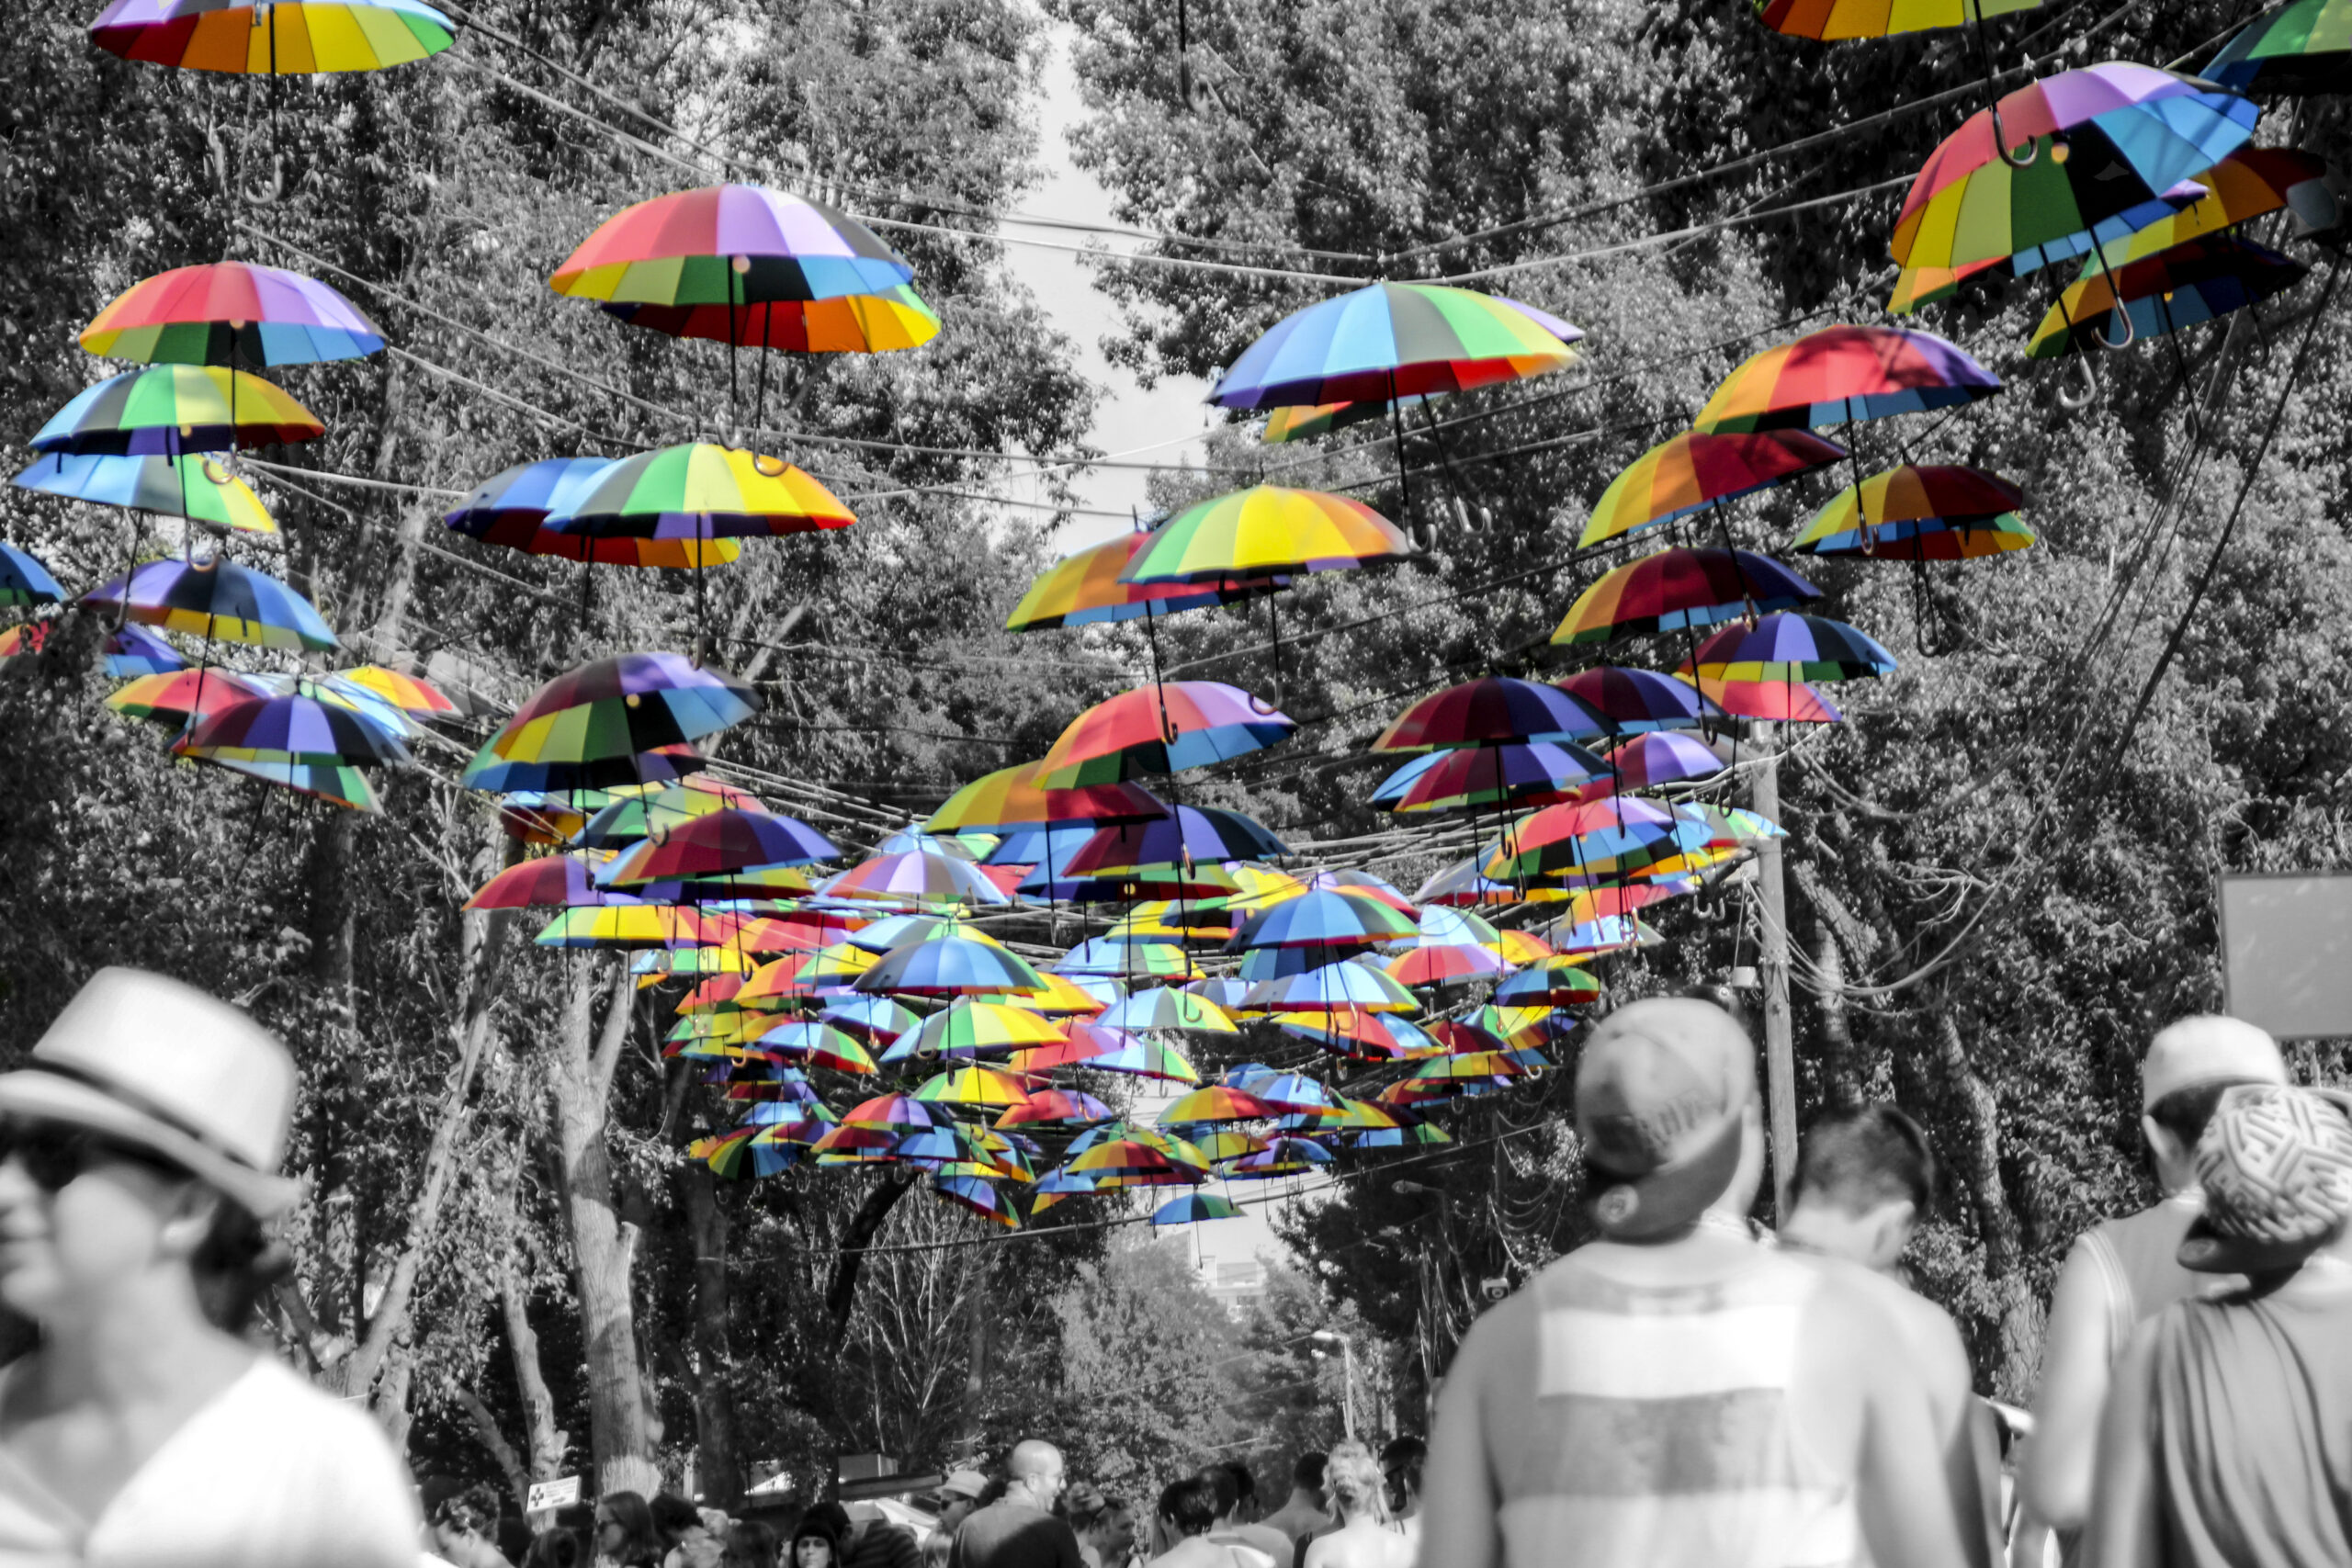 A piece of artwork by Eoin; bright multi-coloured umbrellas hand like lanterns above a black and white street scene